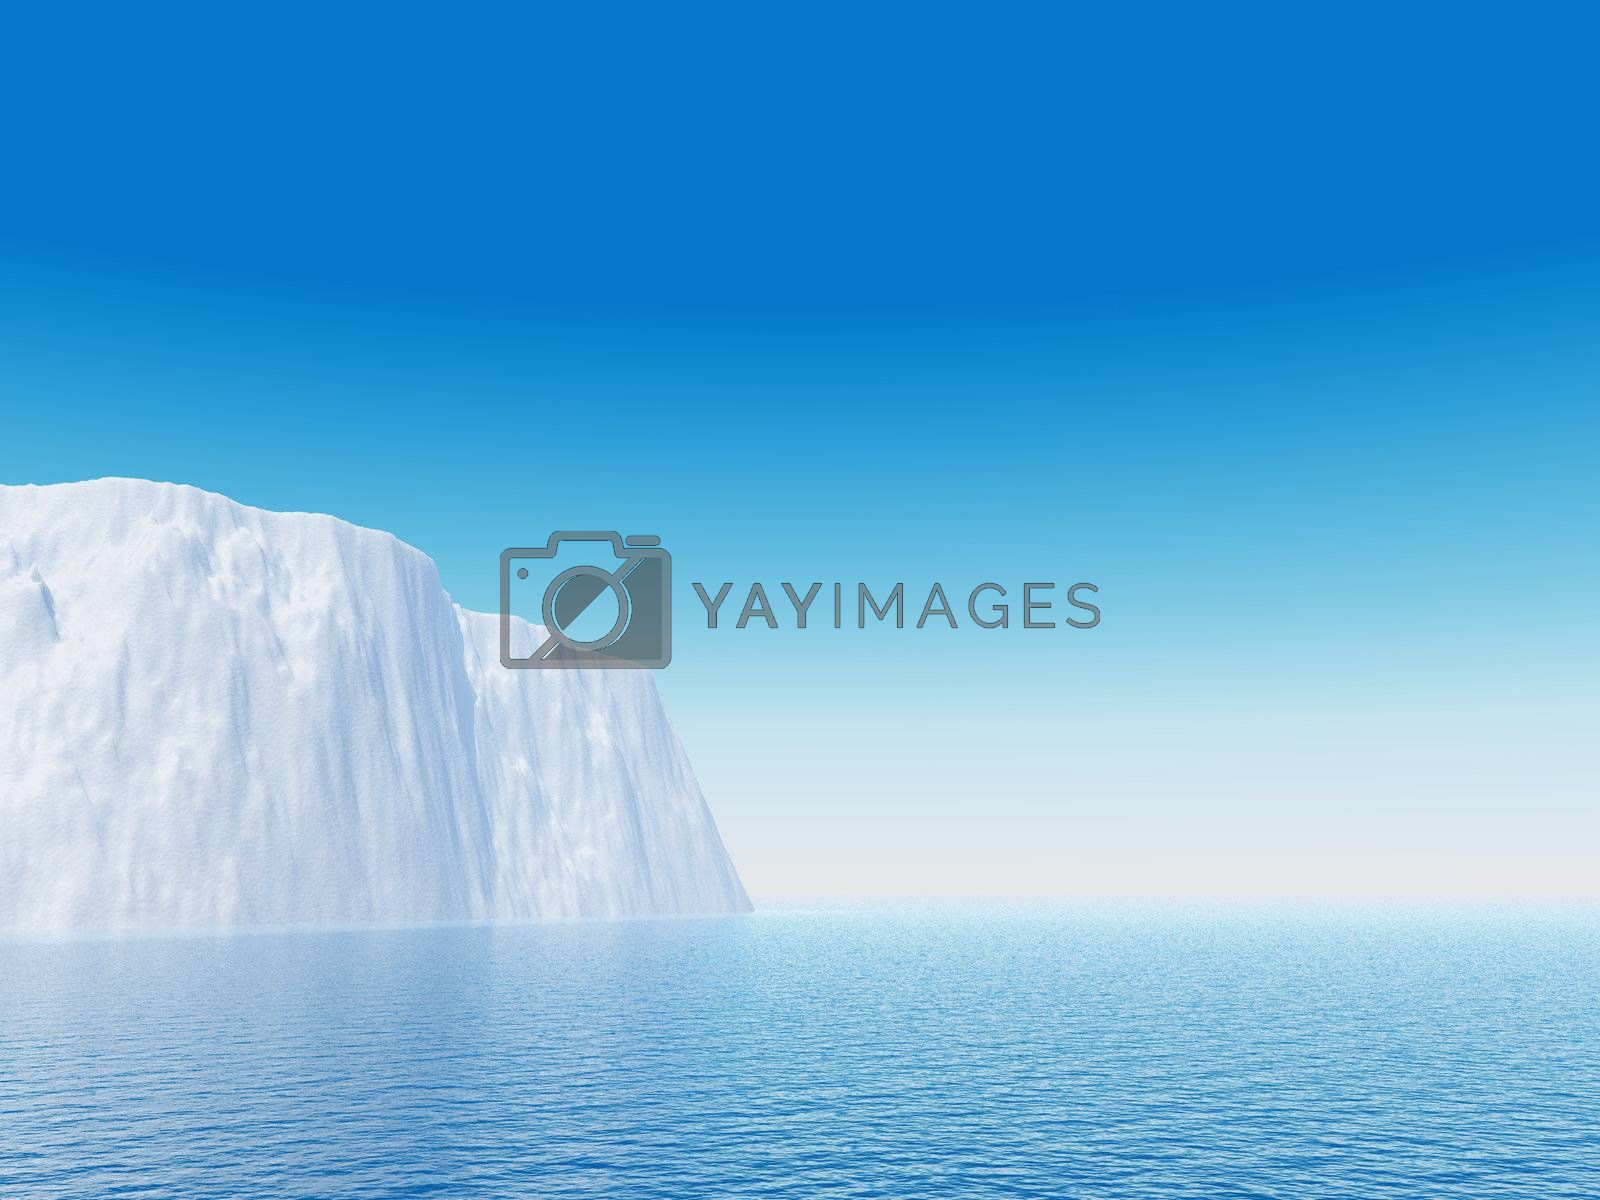 Royalty free image of iceberg by drizzd